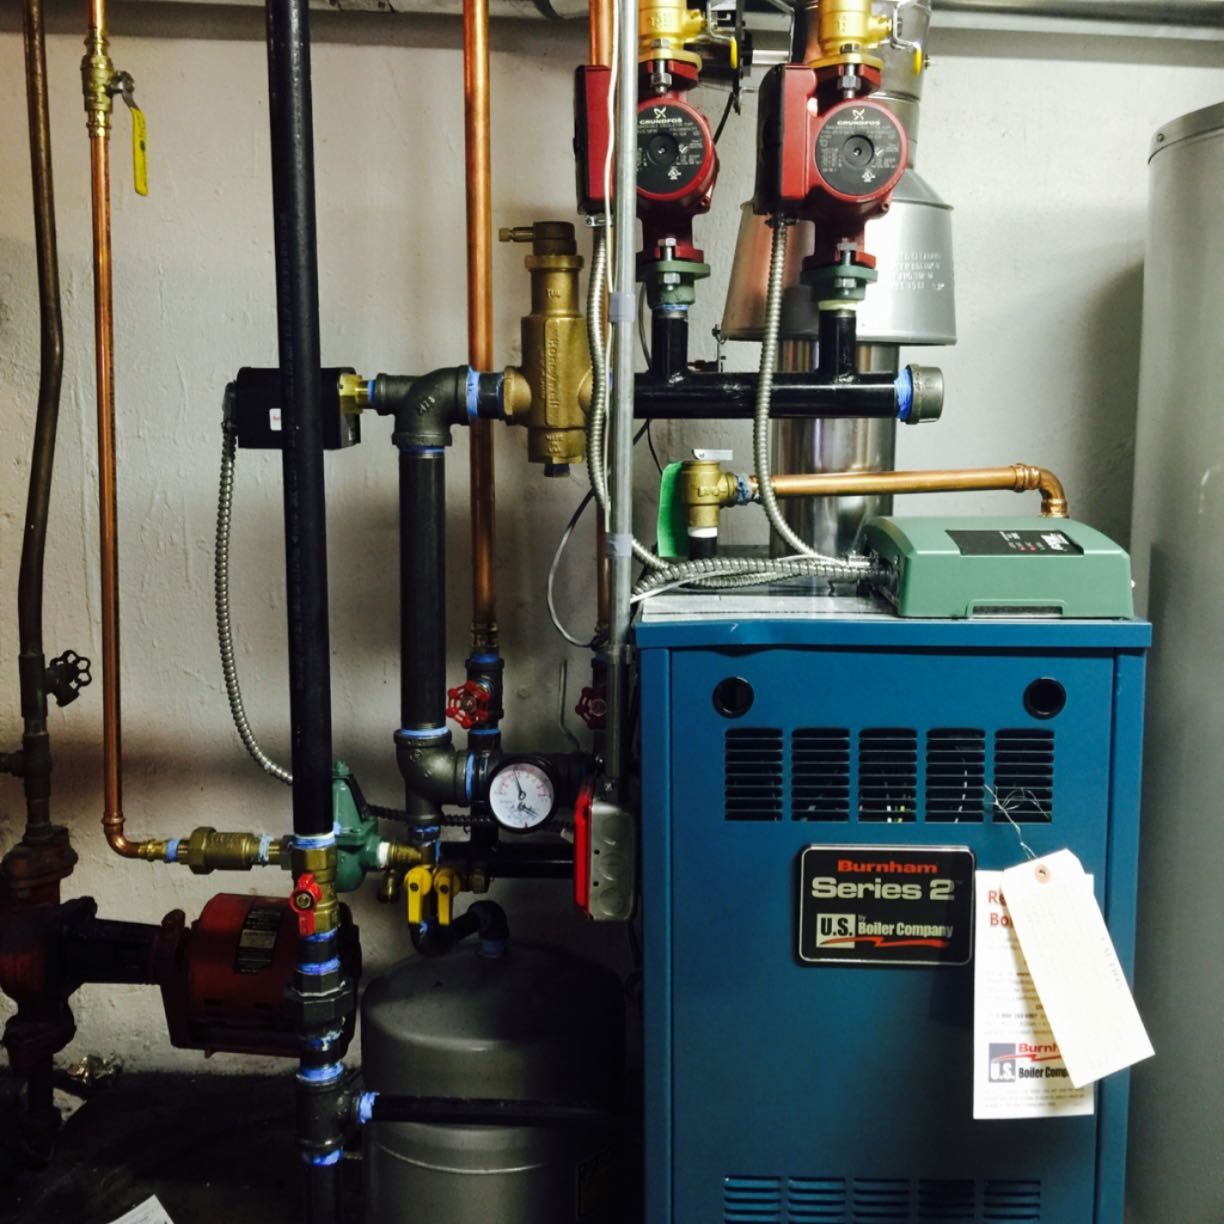 Our team just completed an oil-to-gas conversion for a brand new Malverne, NY resident. Welcome to the neighborhood and we hope you enjoy the benefits of your efficient 50-gallon Hot Water Heater and